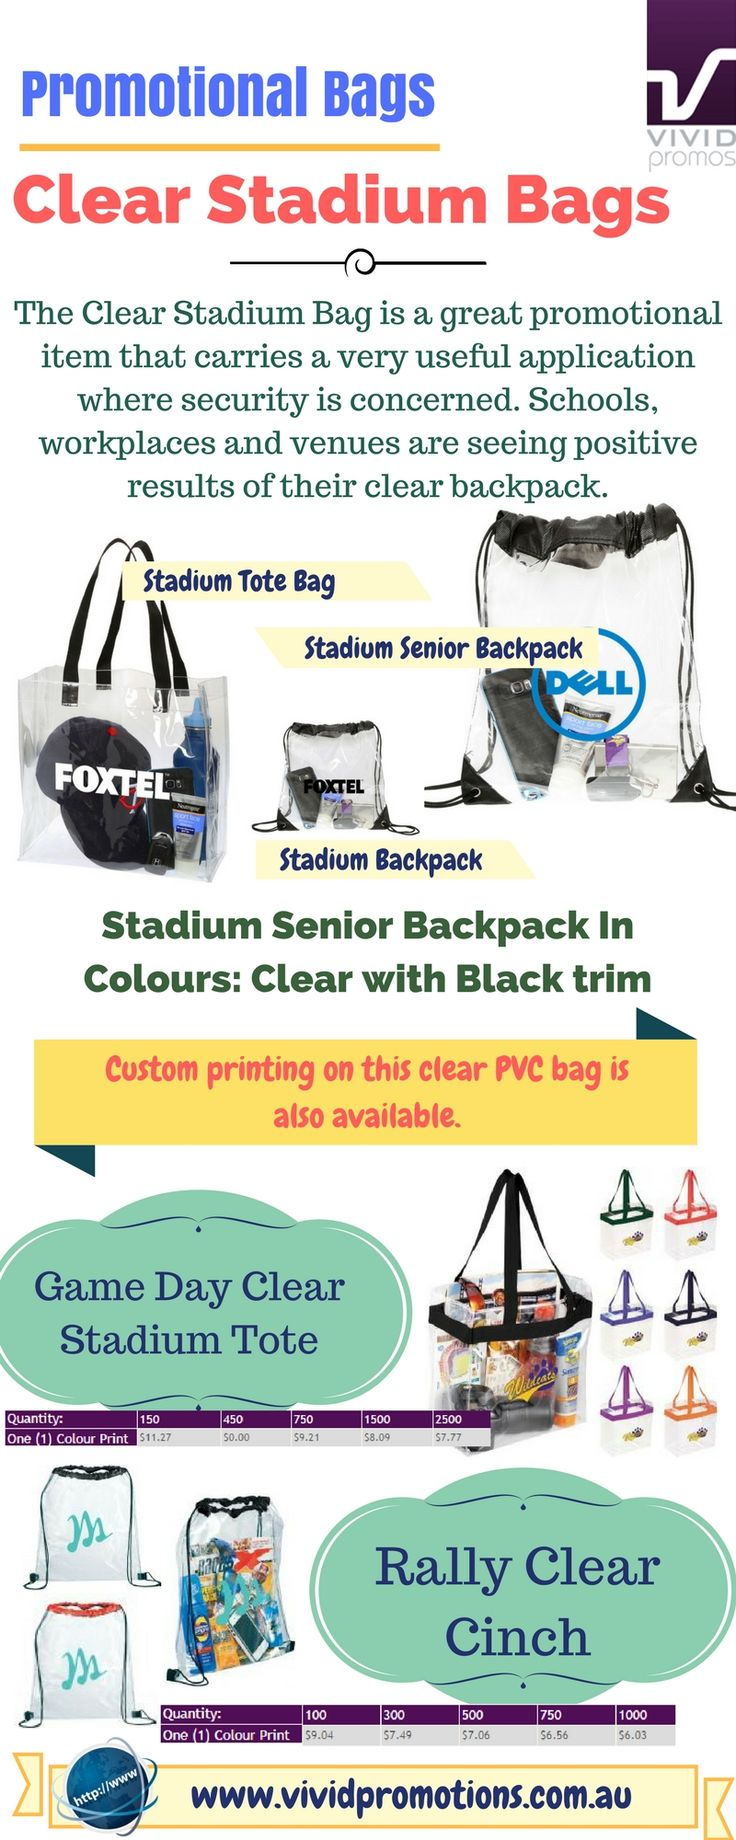 Customise your brand logo or message with clear stadium bags which is great promotional item that carries a very useful application where security is concerned. To know more, view this full infographic.